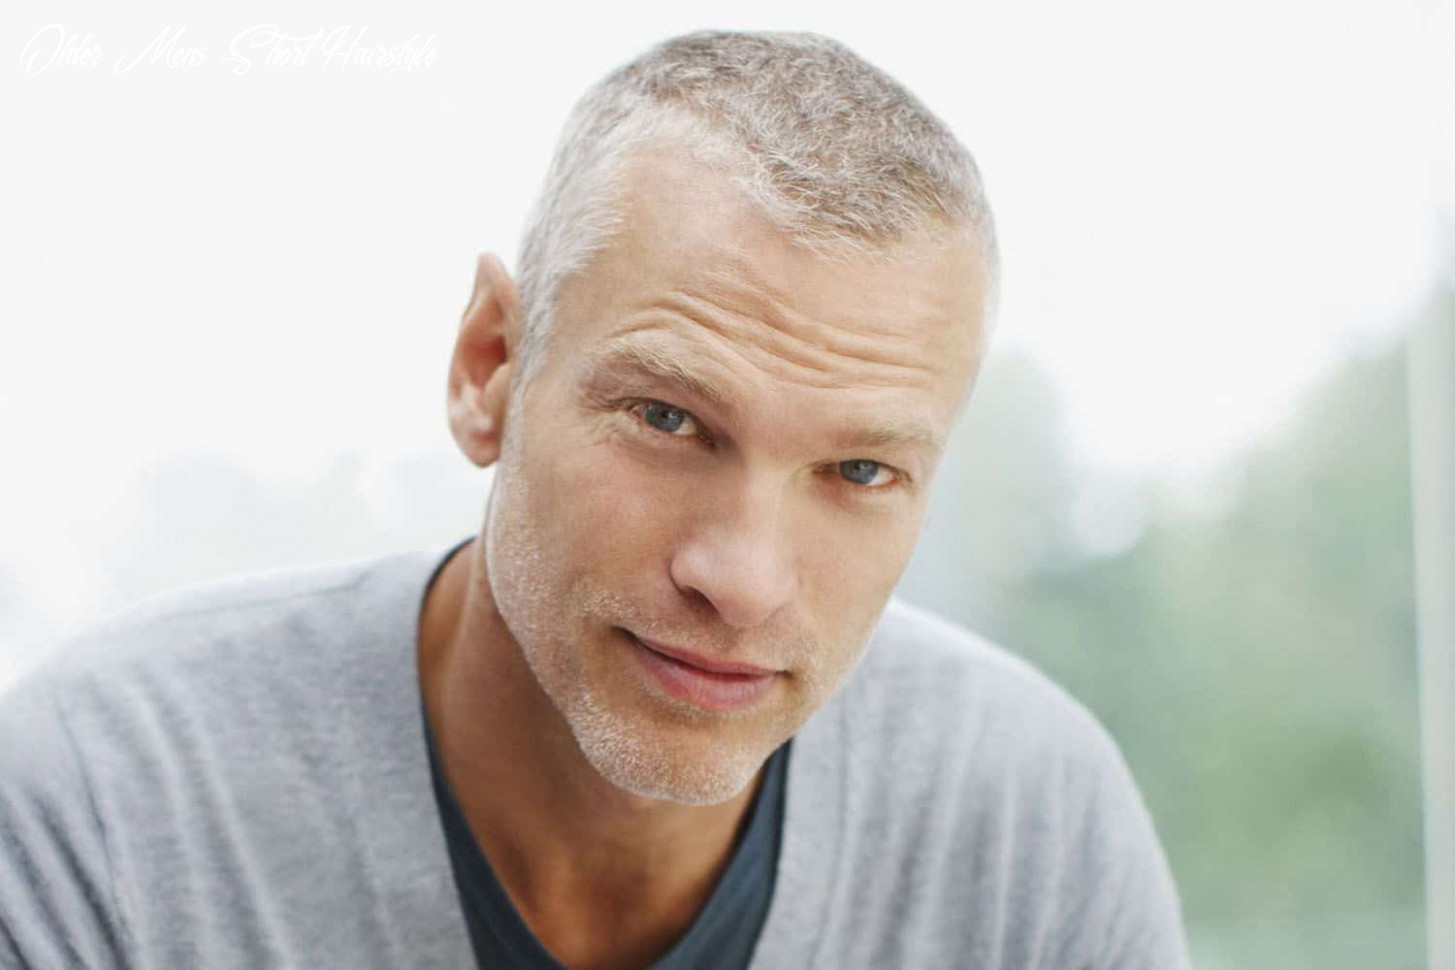 Hairstyles for older men smart, cool and funky hairstyles for